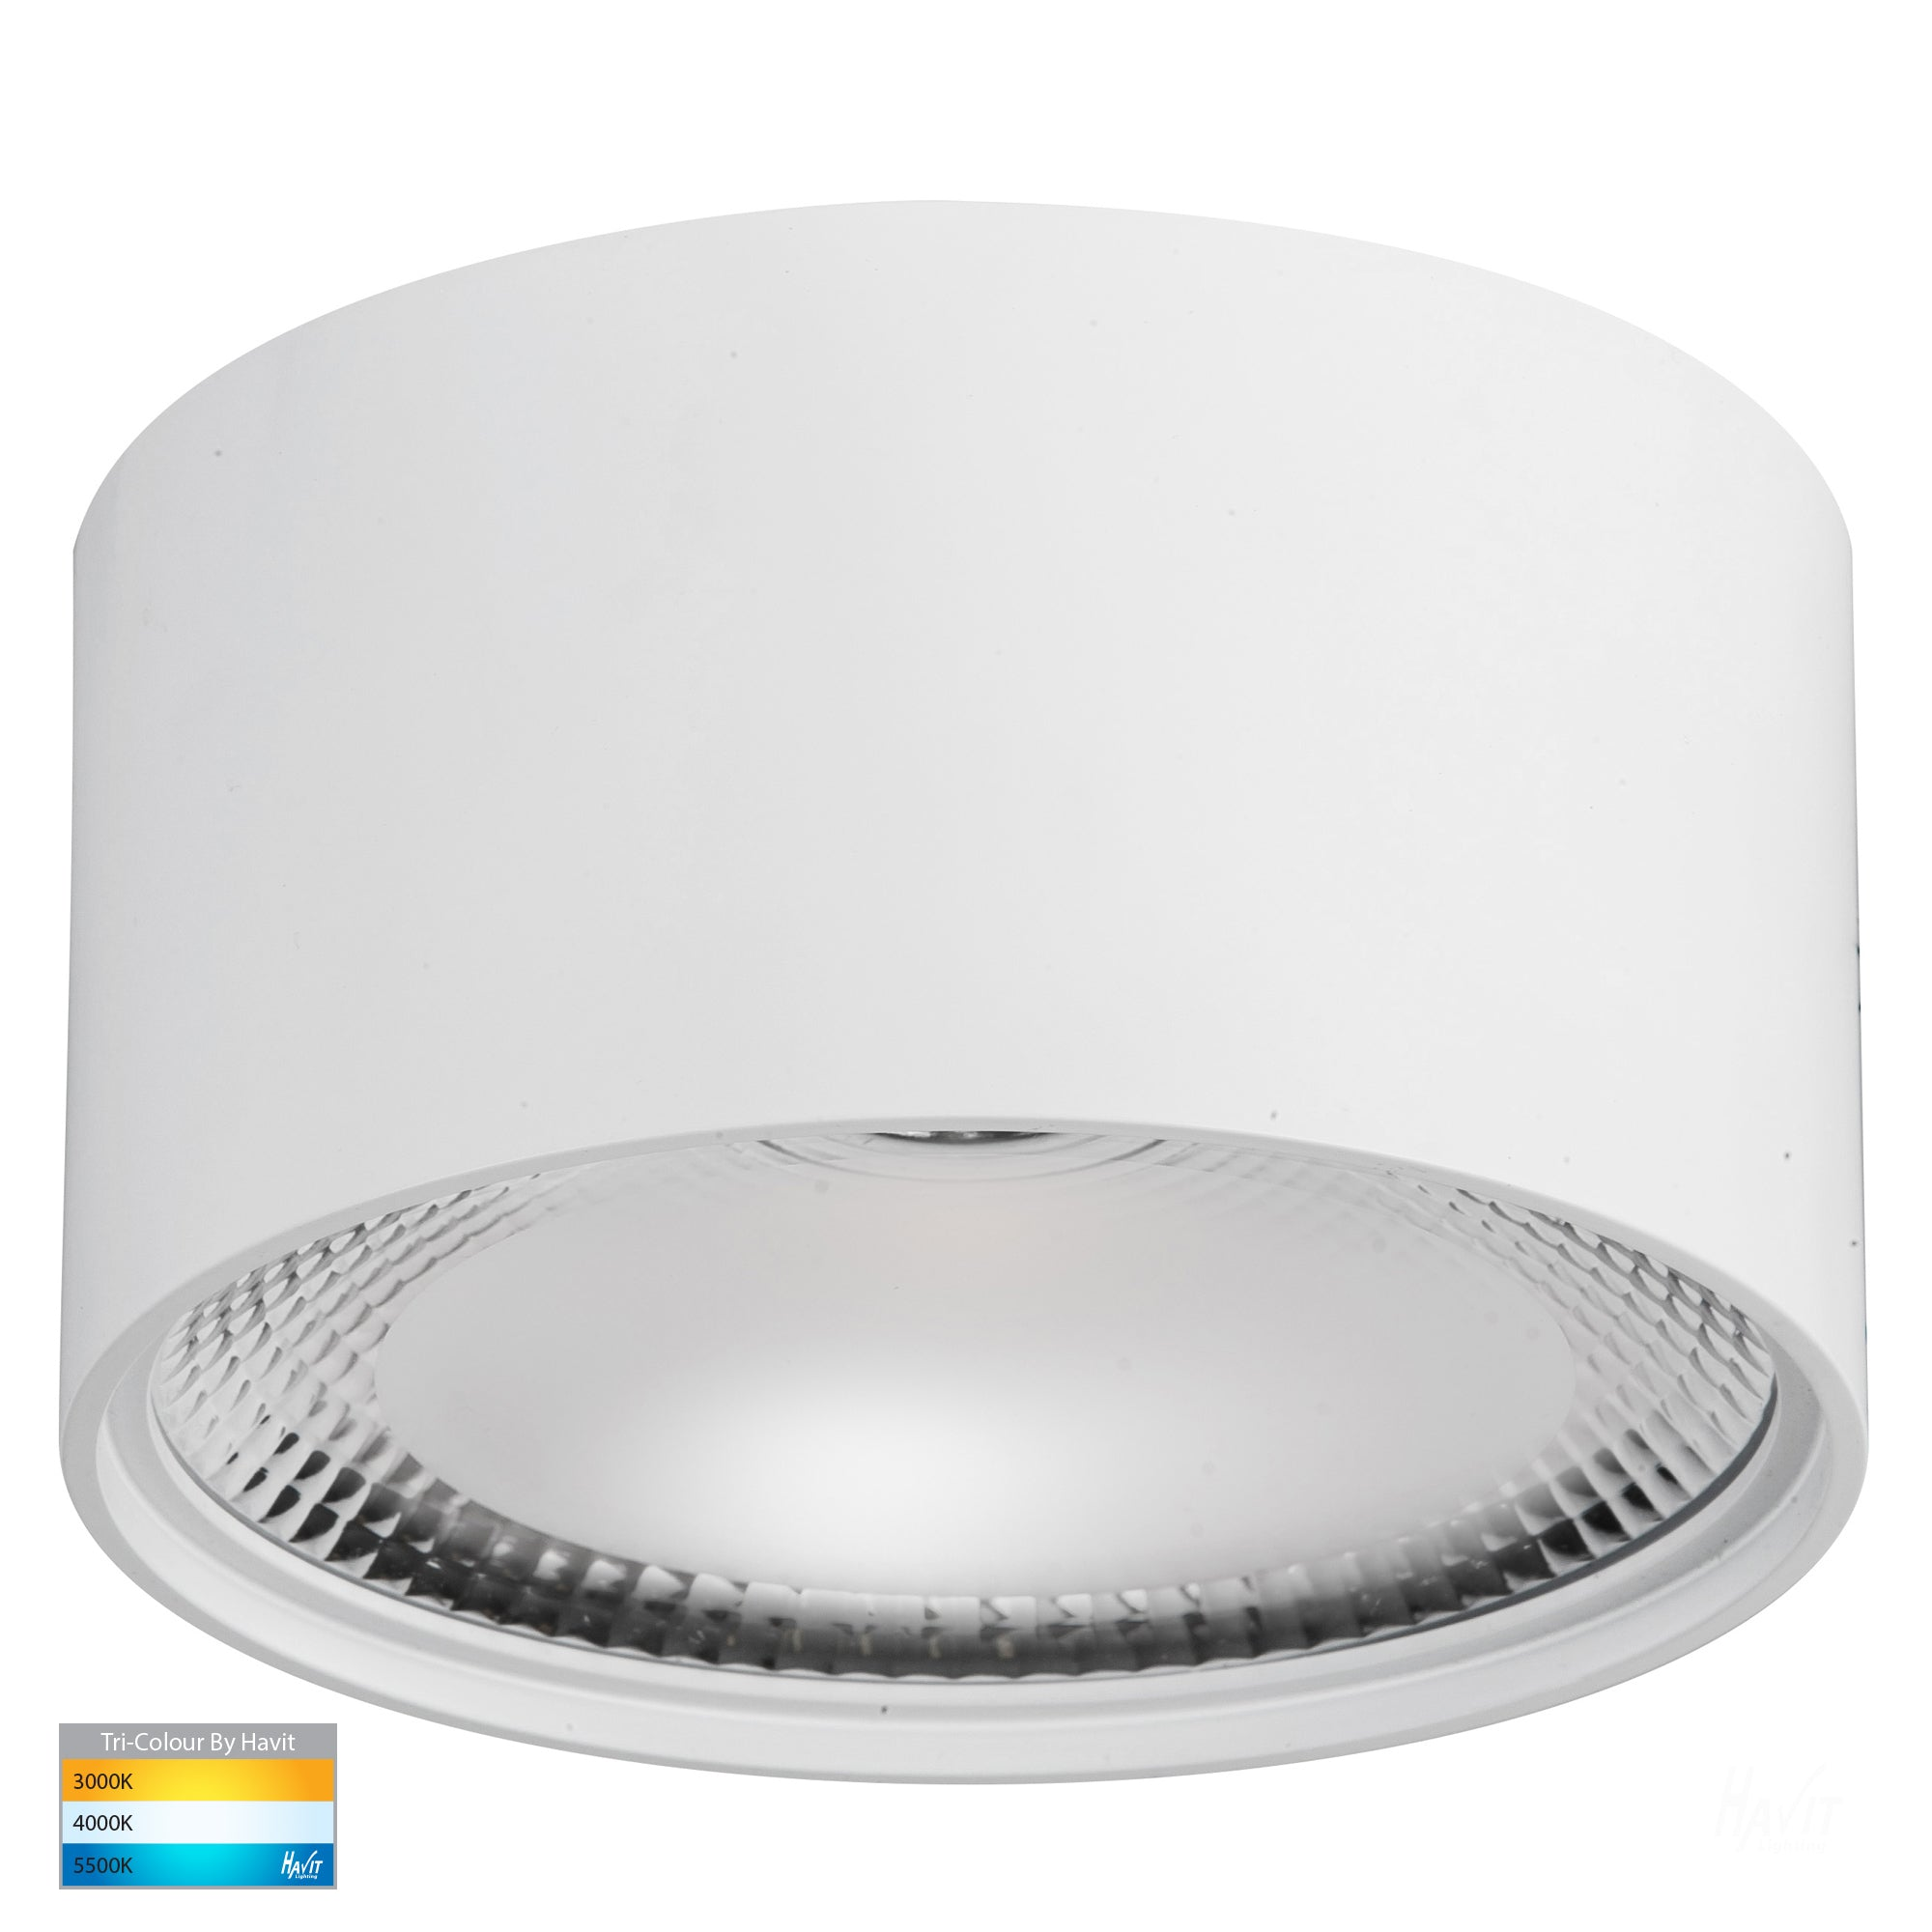 HV5805T-WHT - Nella White 18w Surface Mounted LED Downlight